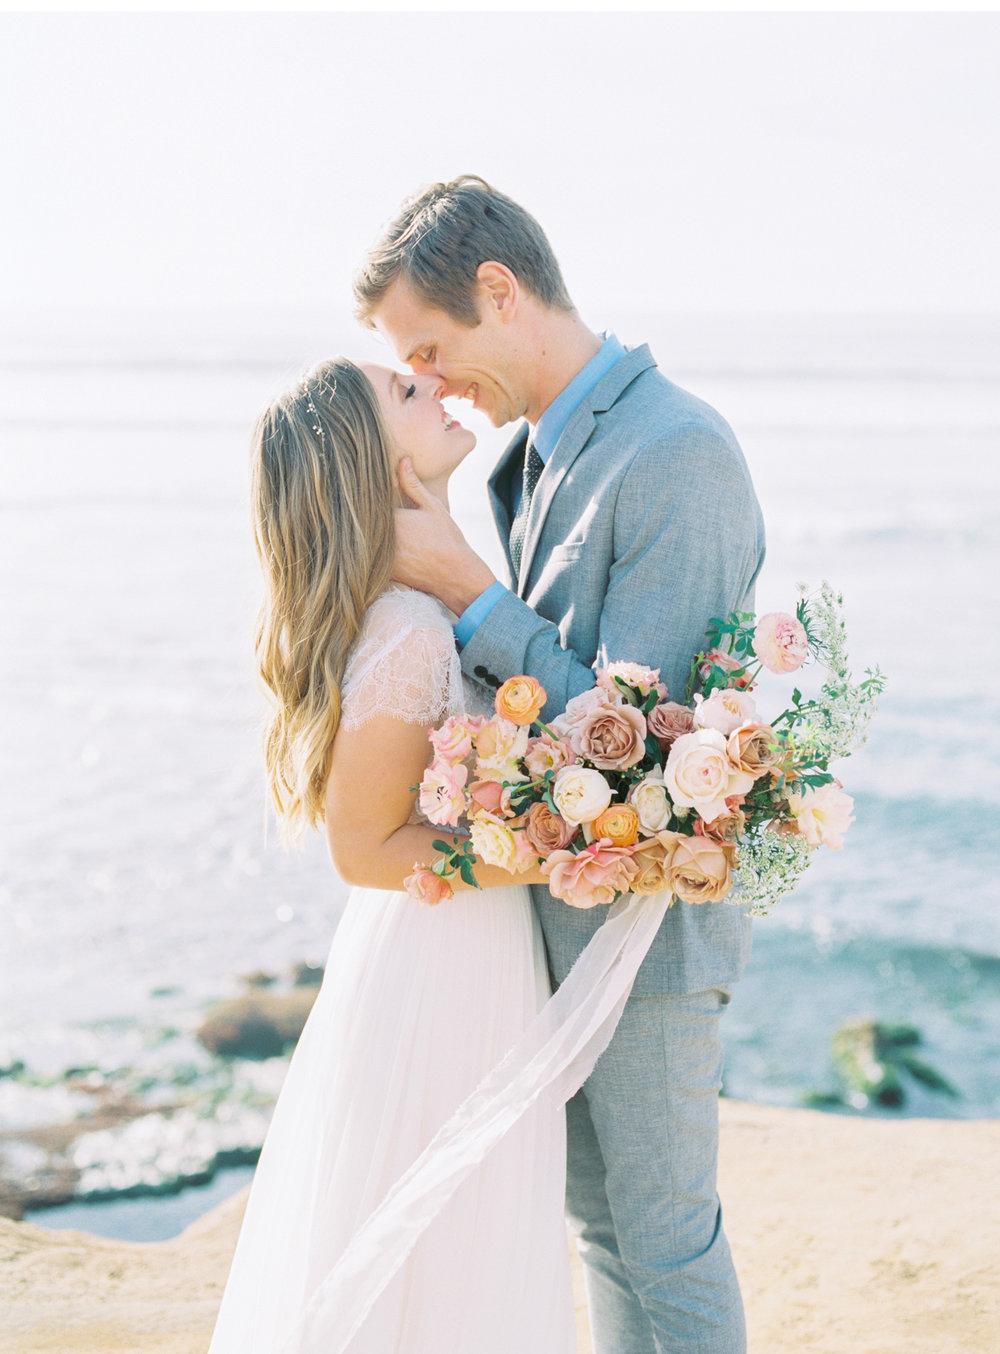 Style-Me-Pretty-Sunset-Cliffs-San-Diego-Wedding-Natalie-Schutt-Photography_01.jpg